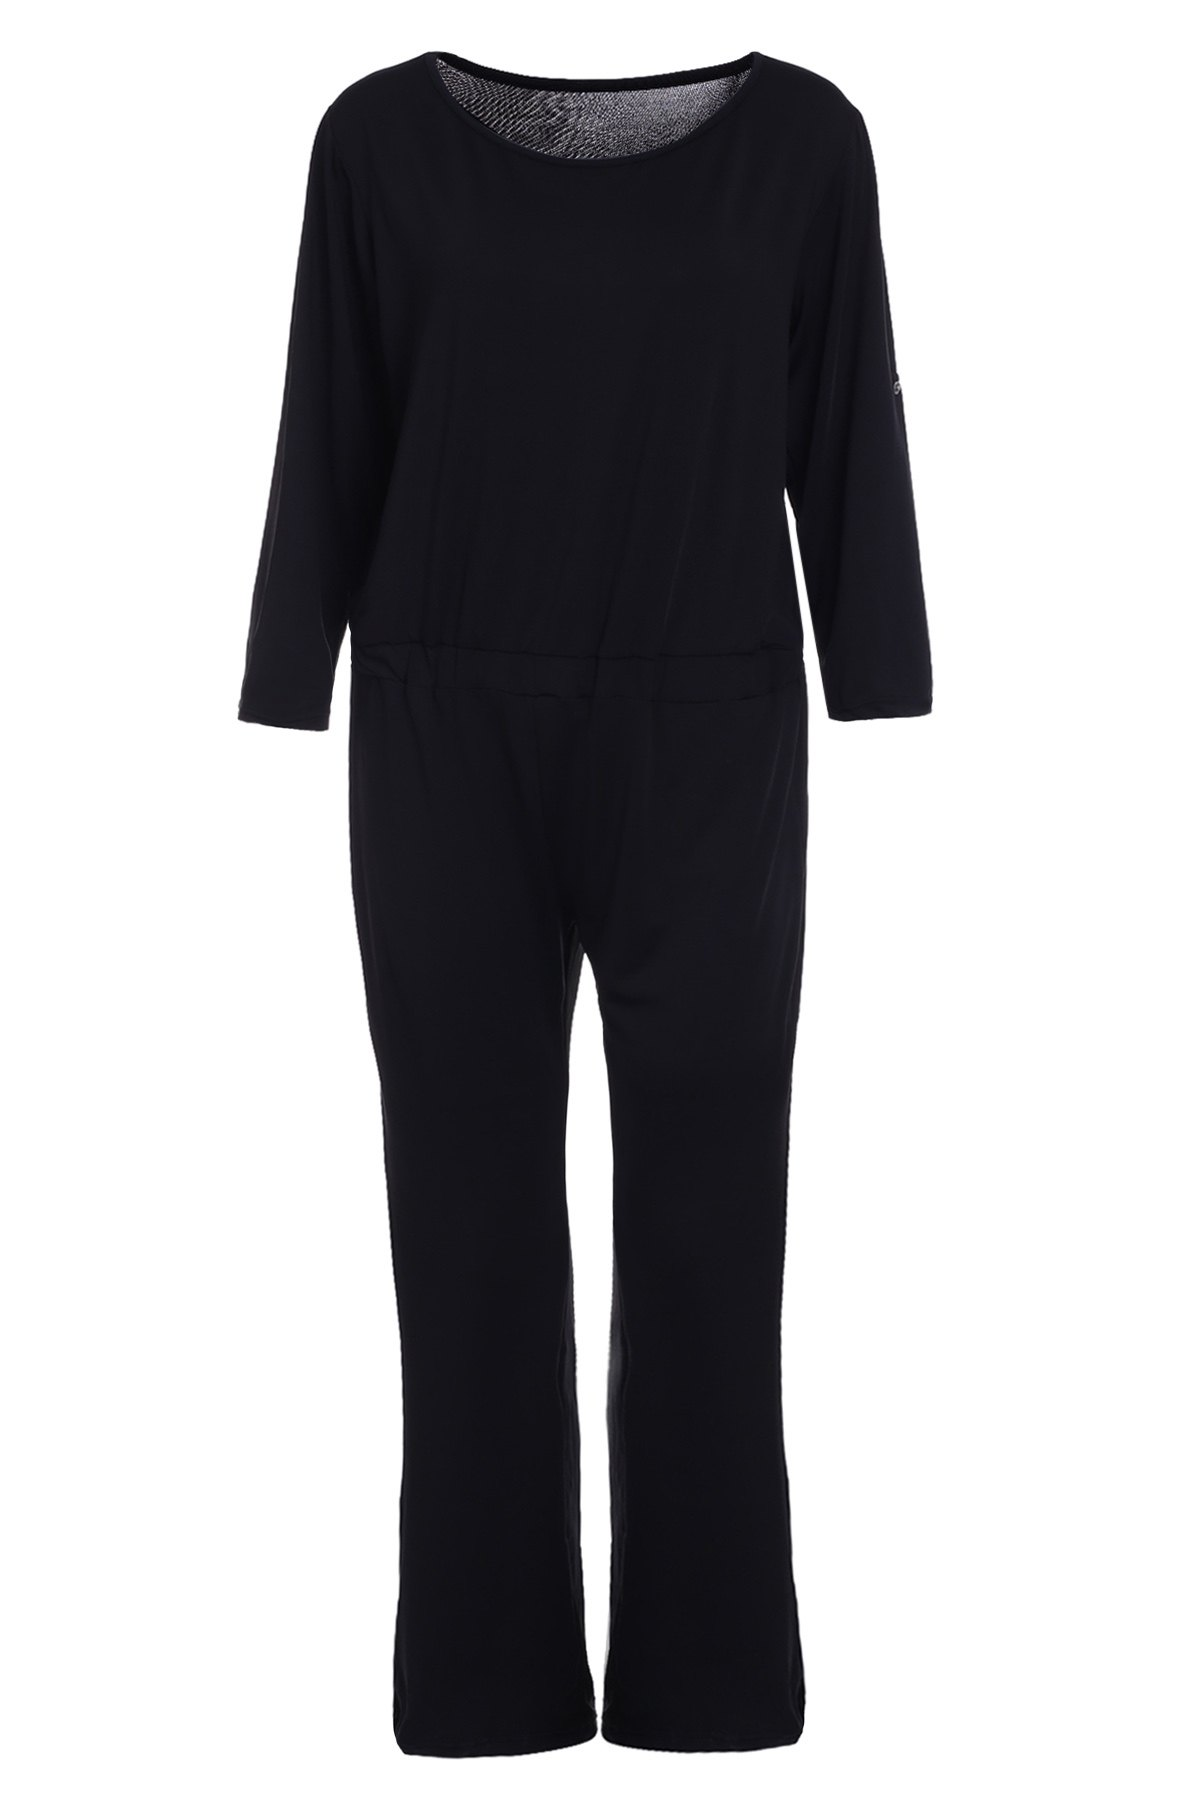 Elegant Women's Round Neck Black Jumpsuit - BLACK S